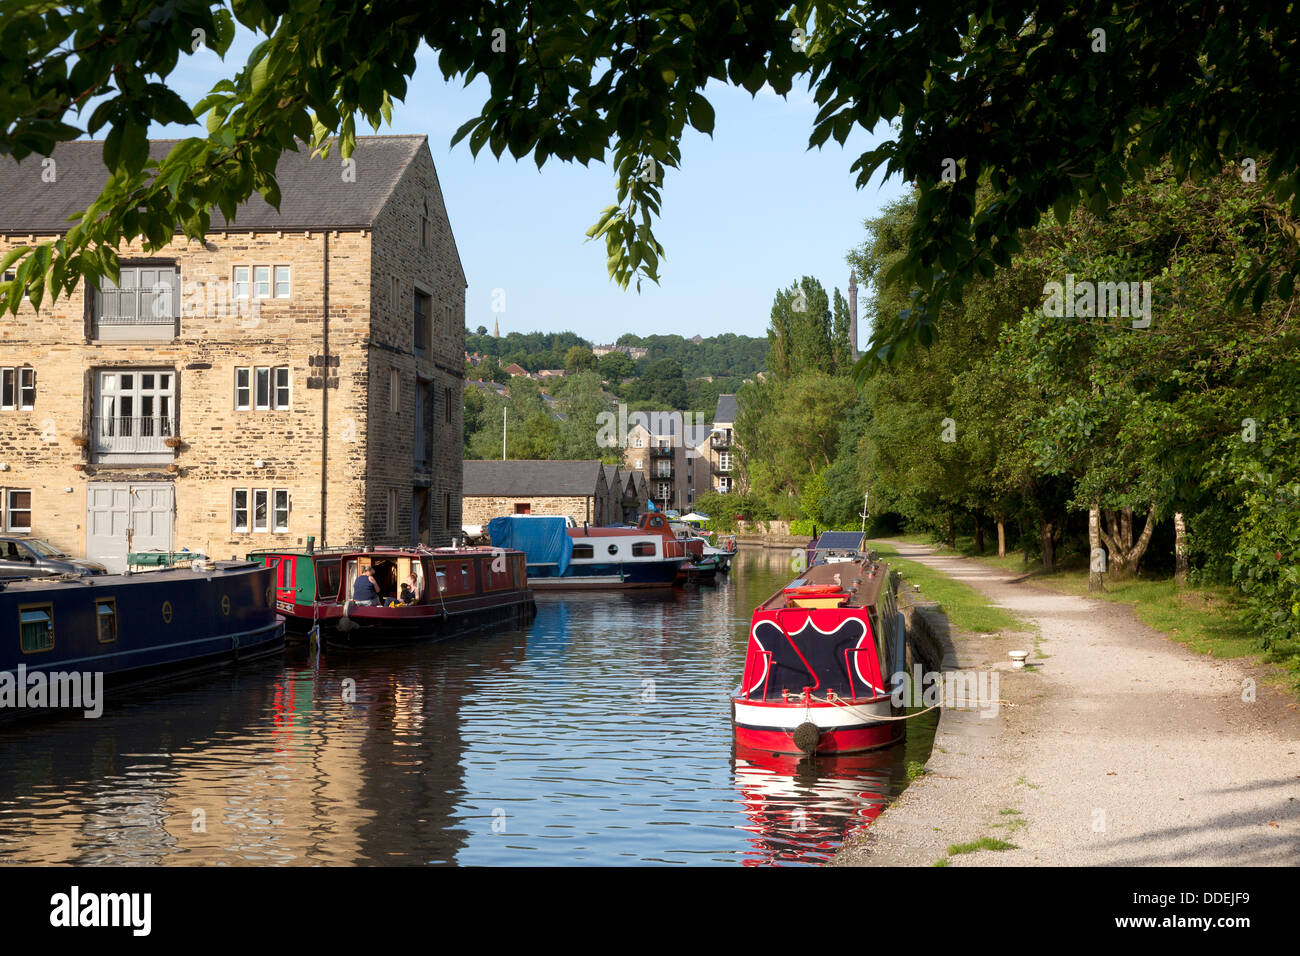 boats-moored-at-the-wharf-sowerby-bridge-west-yorkshire-DDEJF9.jpg